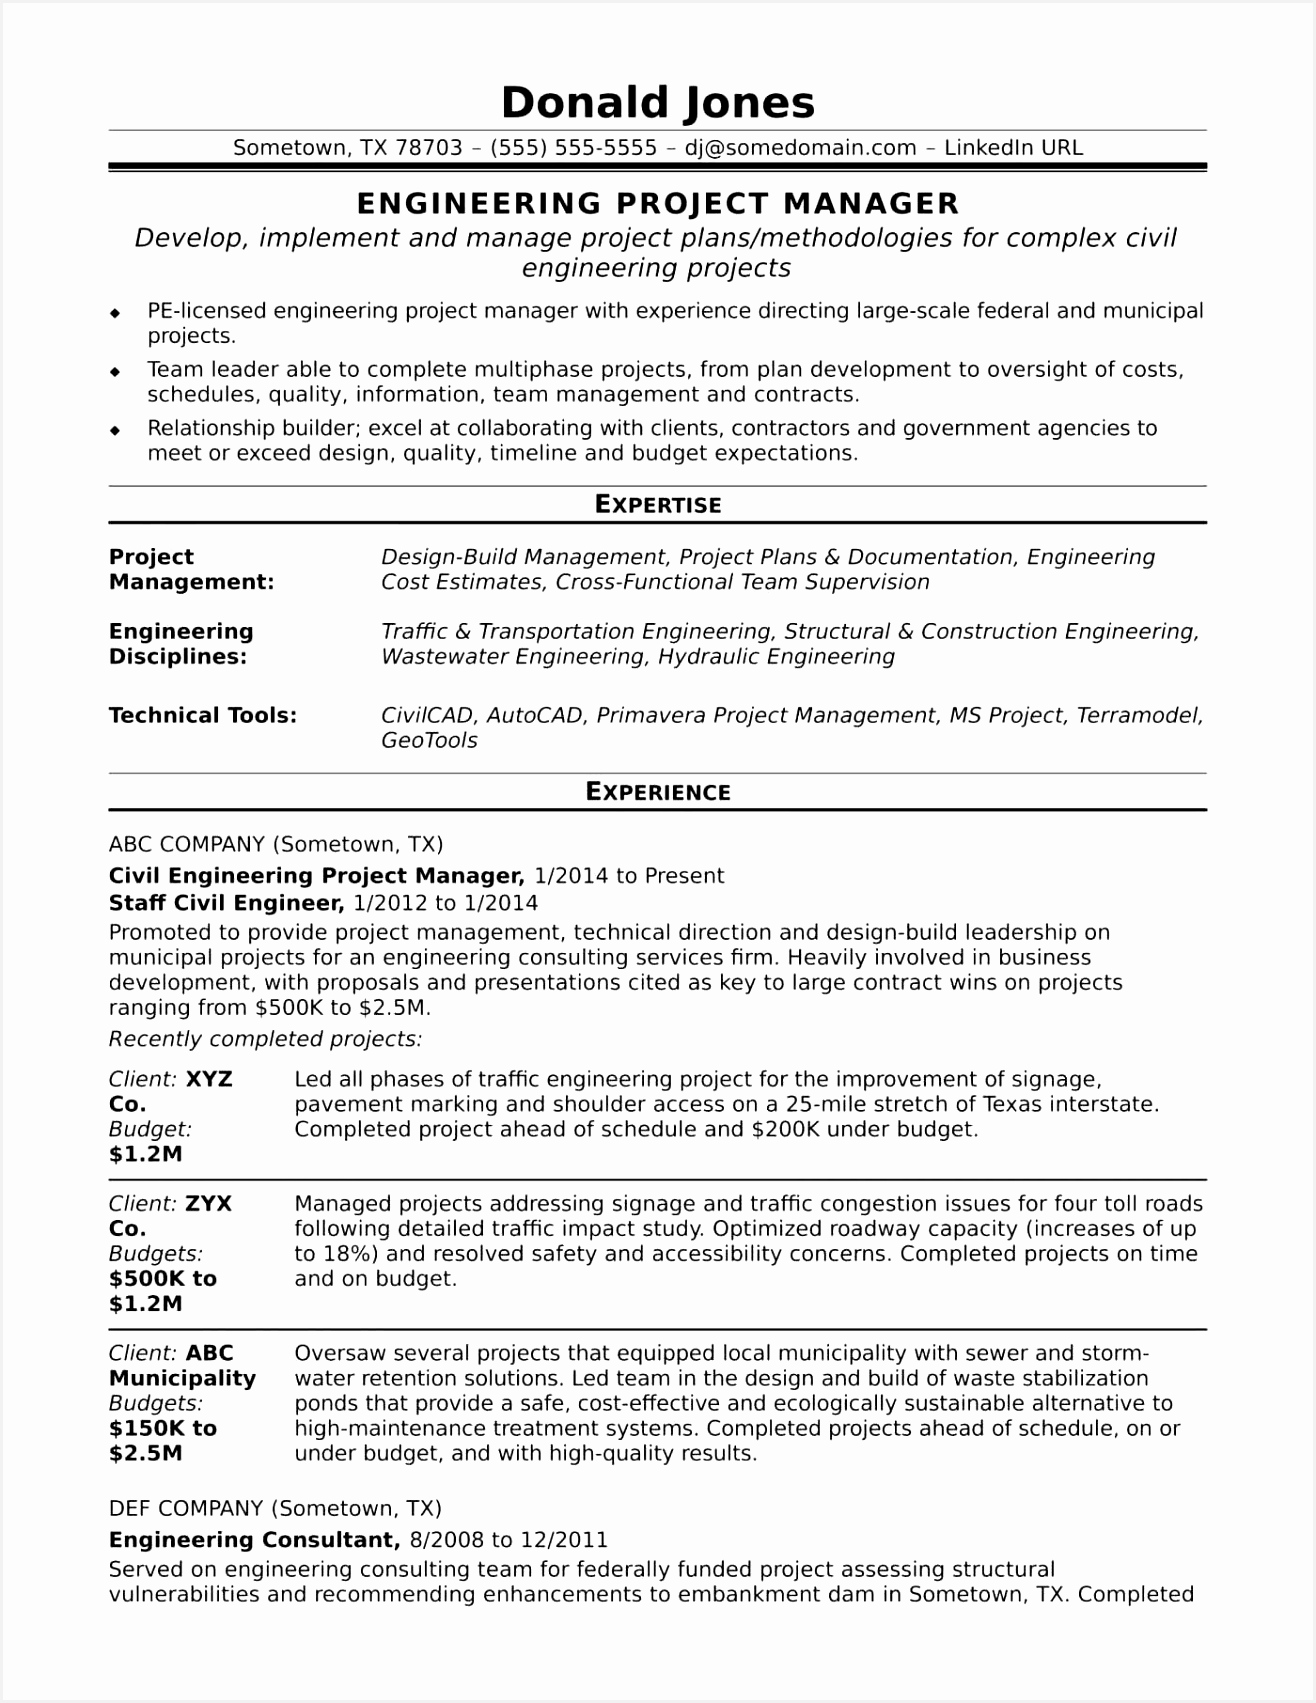 Building Contractor Resume Kclft Best Of Government Contractor Resume Elegant Cv Layout Template Word New Cv17031316